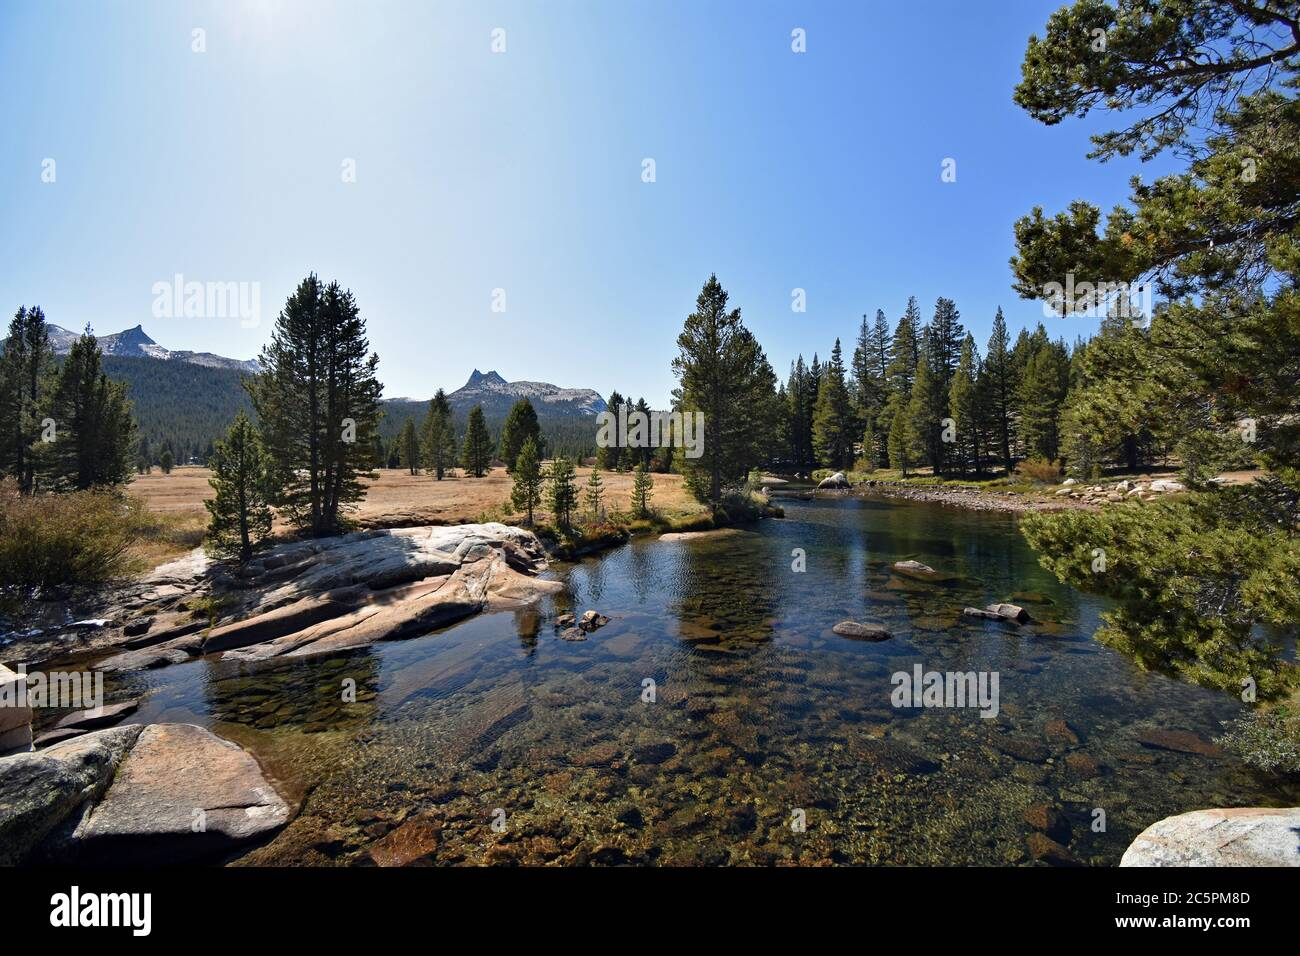 Tuolumne river passing through the sub alpine Tuolumne meadows, with trees and mountains in the background in Yosemite national Park, California Stock Photo